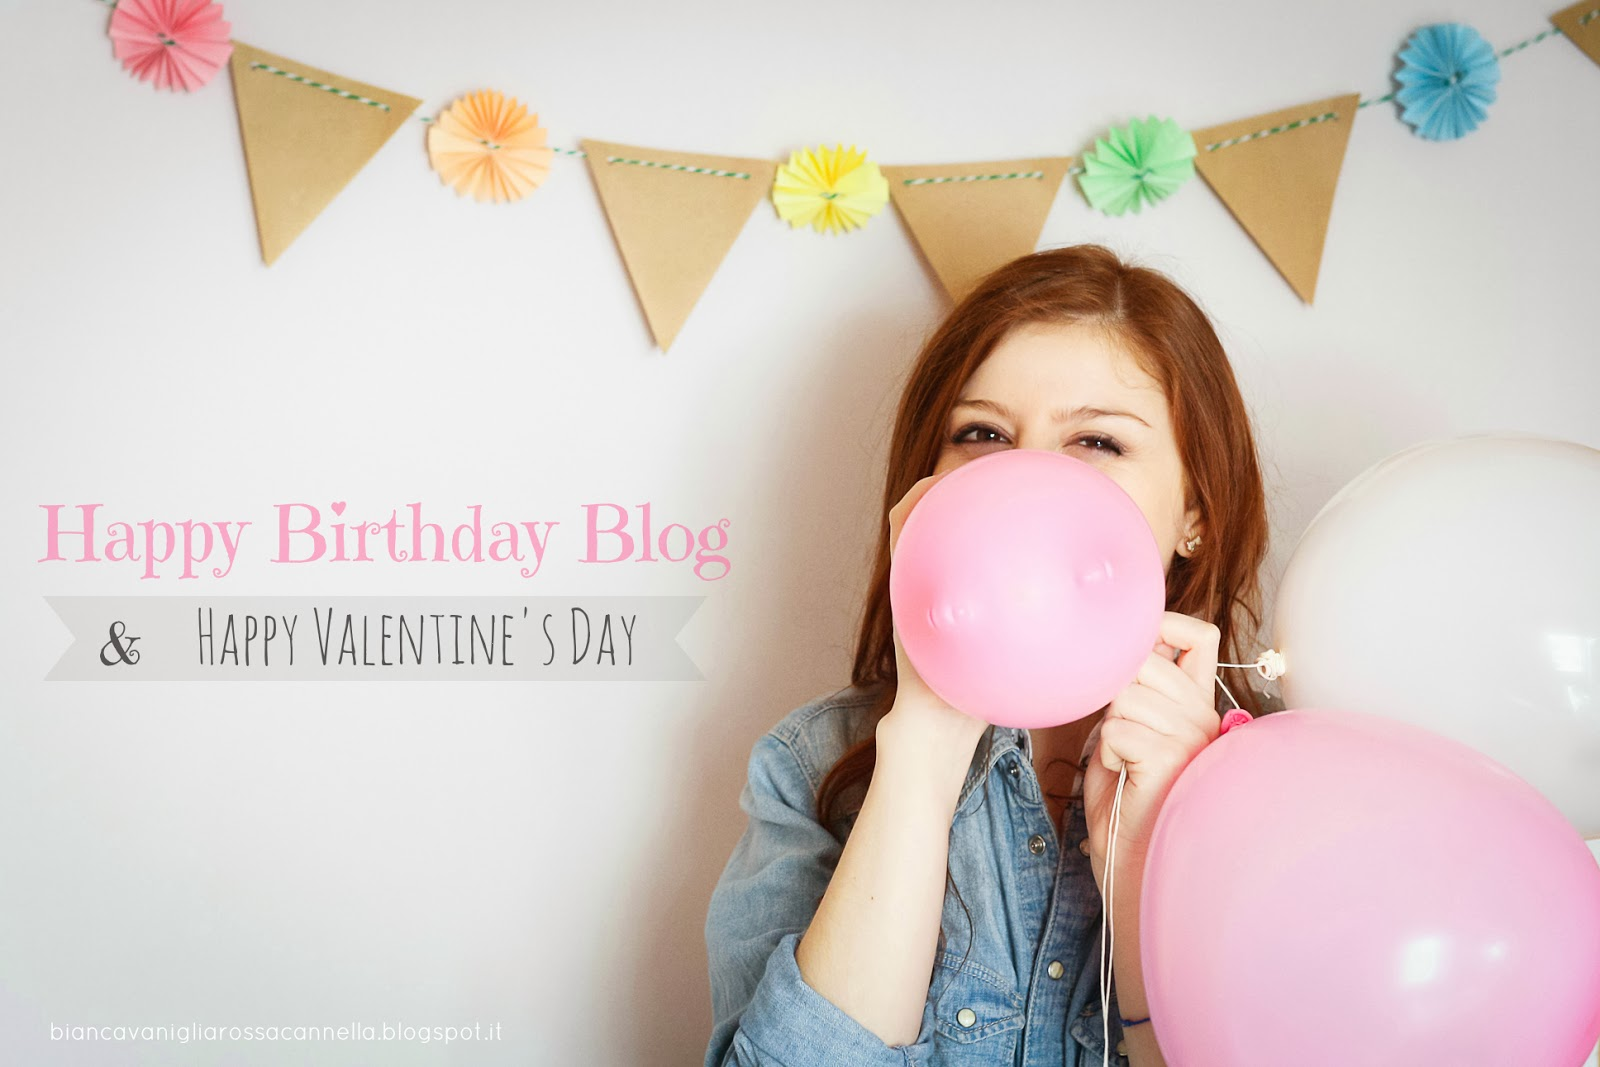 happy birthday biancavanigliarossacannella & happy valentine's day #valentine'sday2